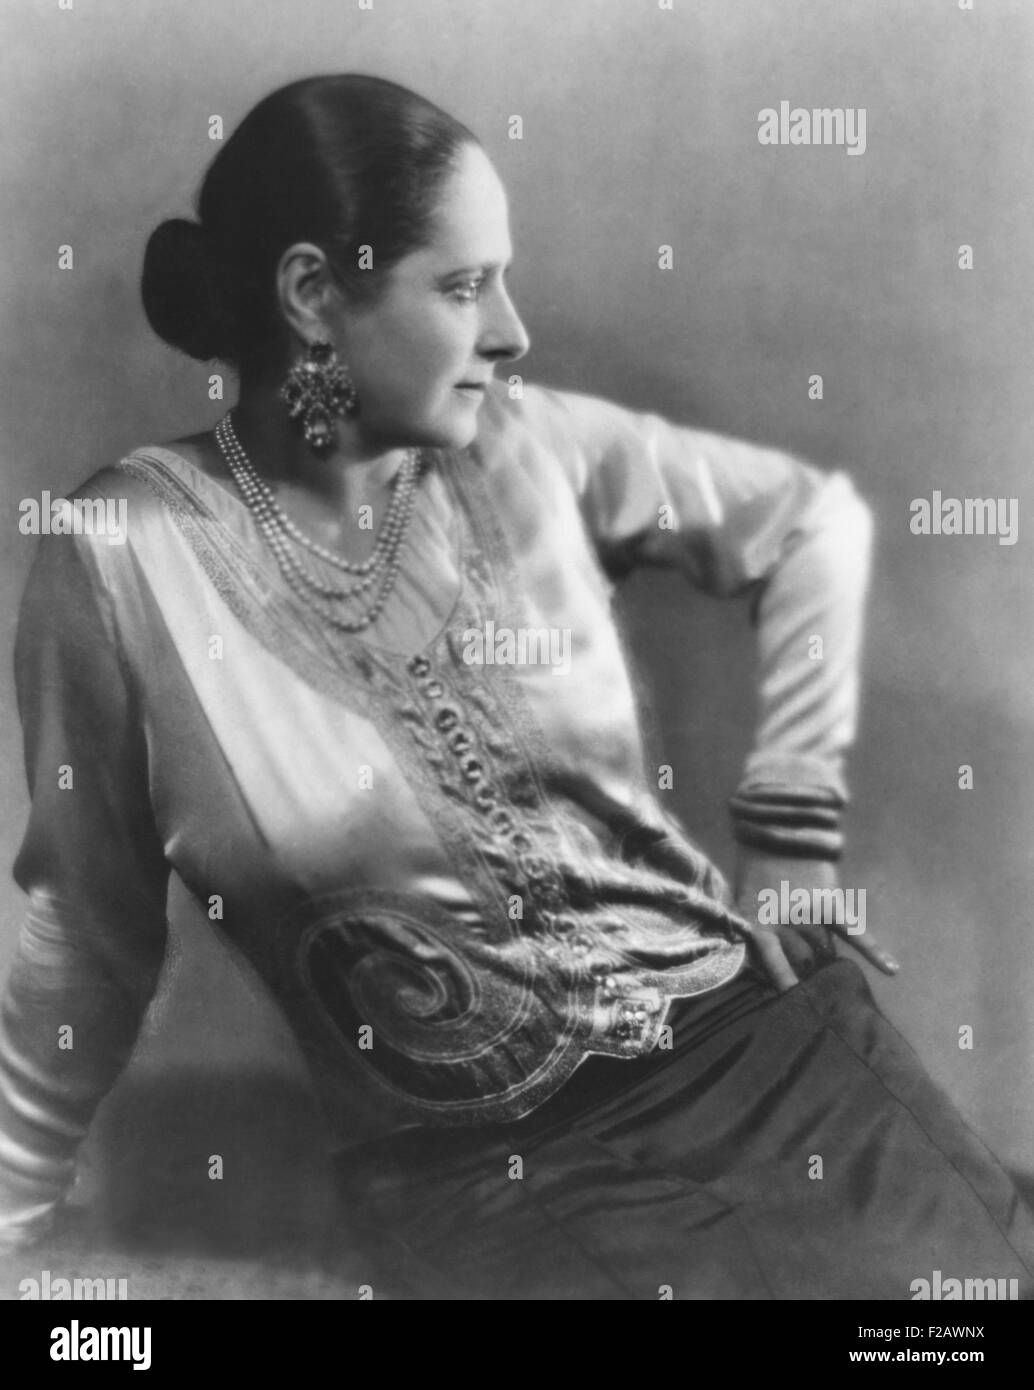 Helena Rubenstein in 1930, the year her book, 'The Art of Feminine Beauty' was published. Photo by Maurice - Stock Image